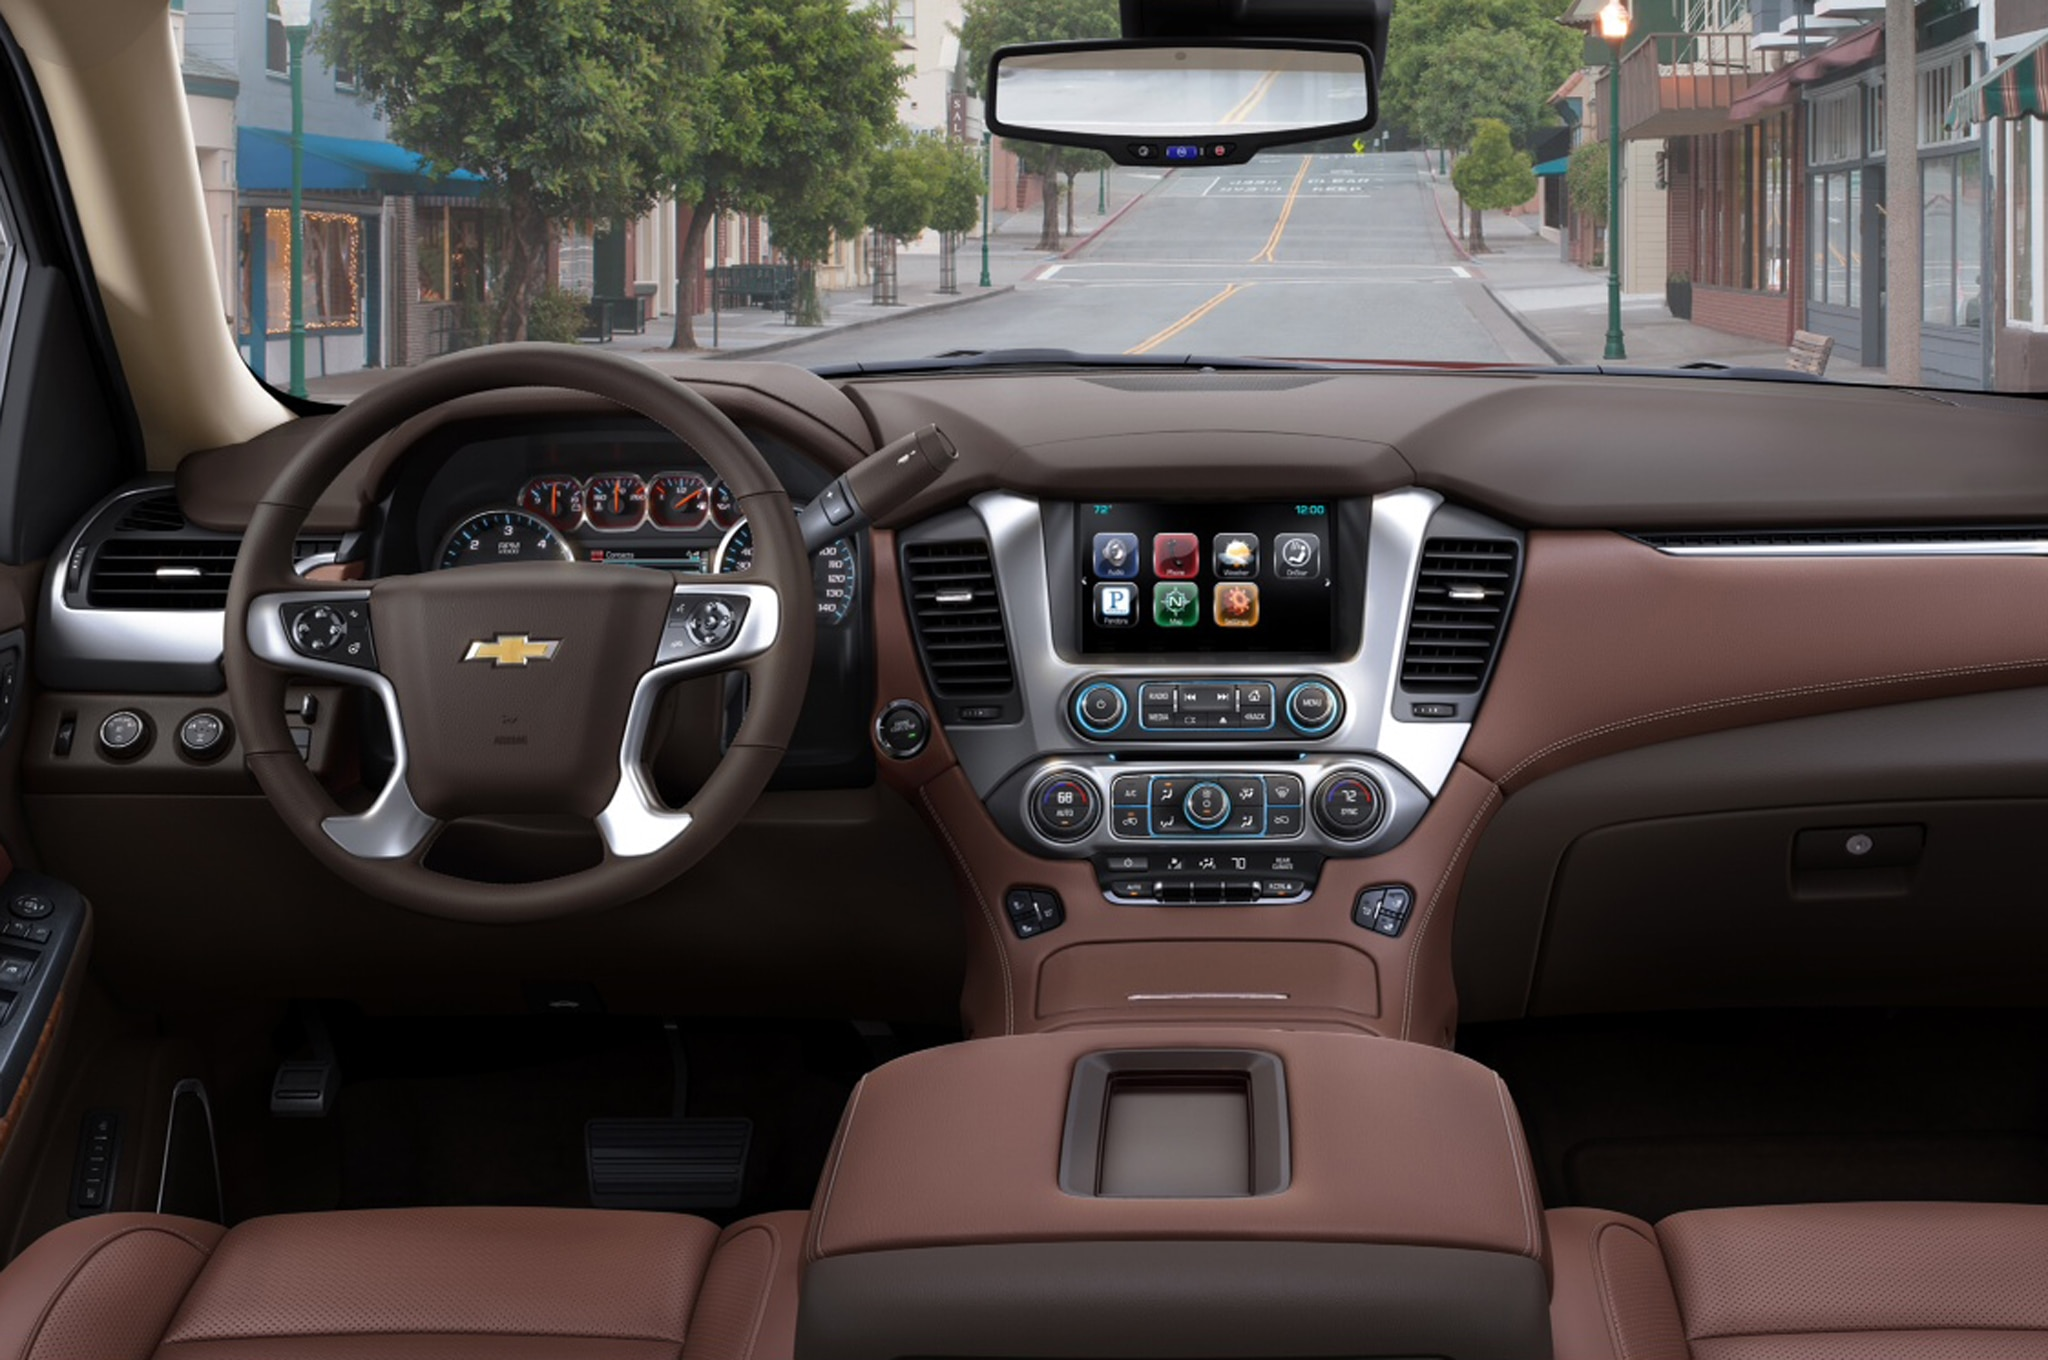 2015 Chevrolet Tahoe dash view